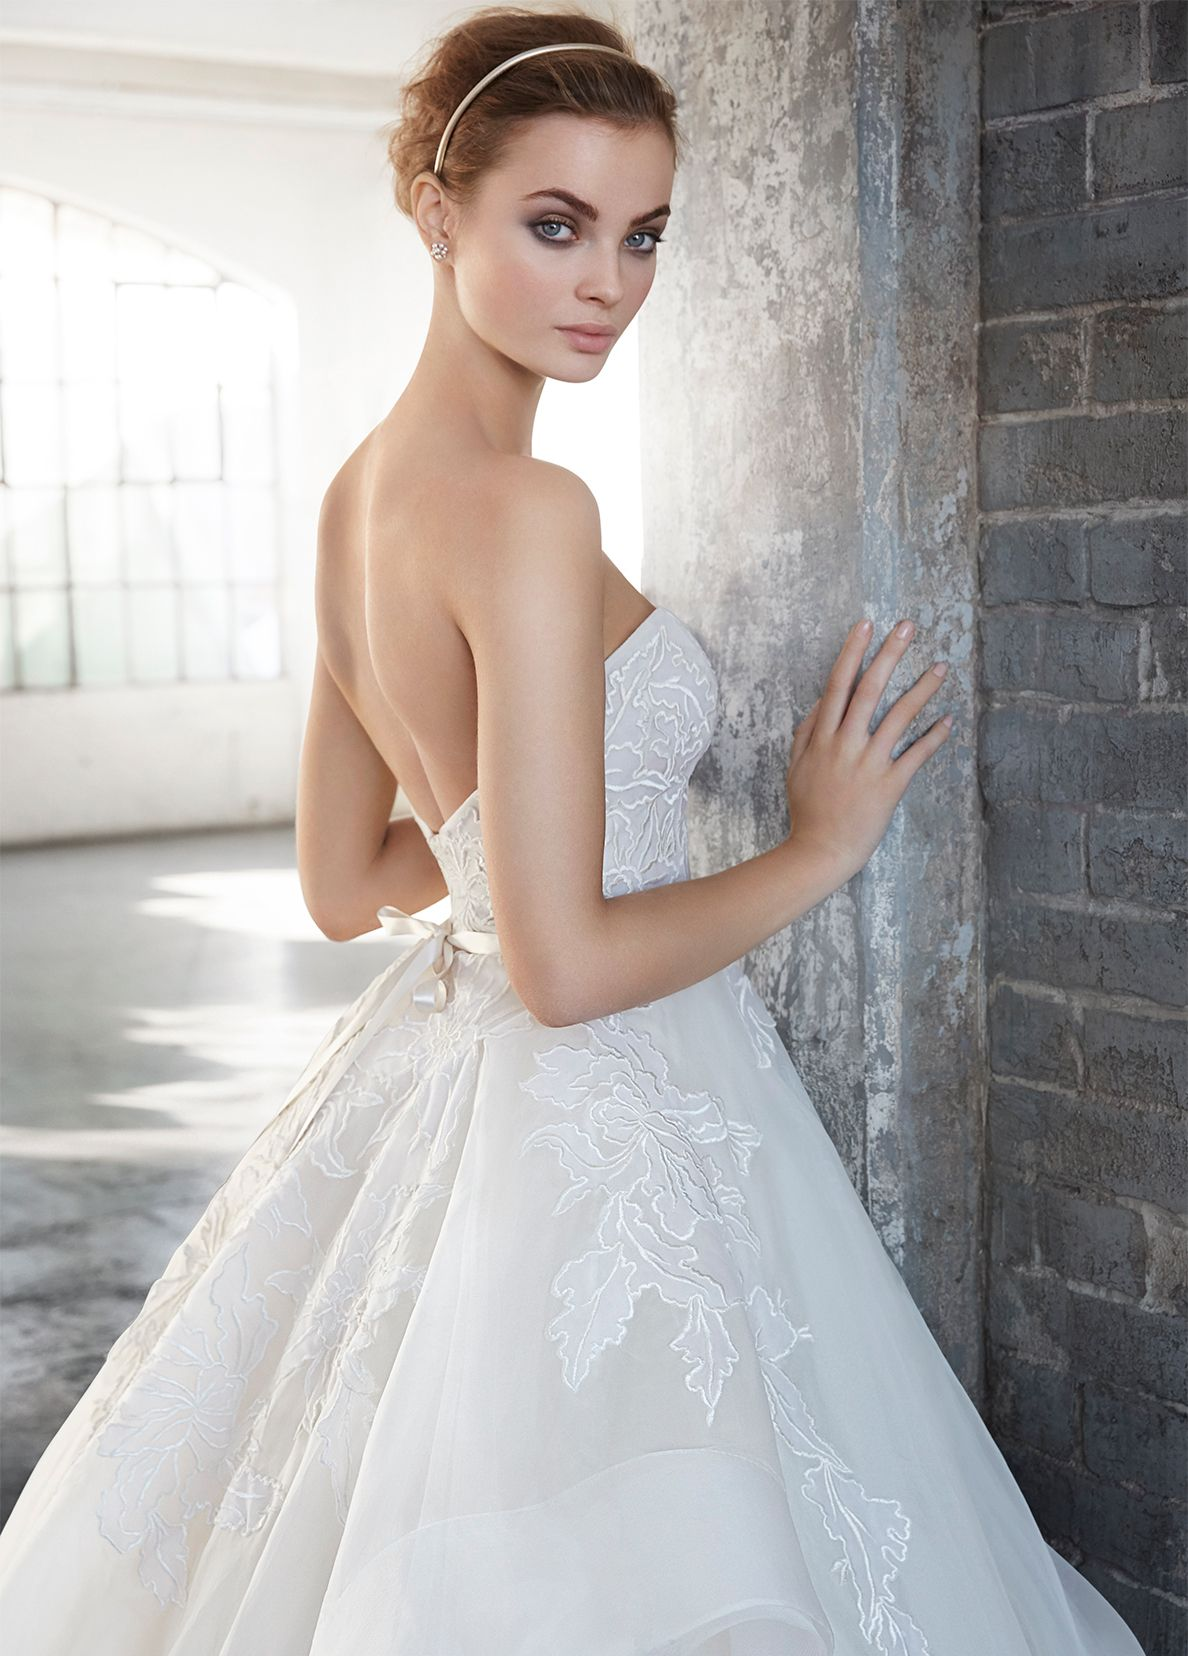 1ecc76da Ivory silk organza floral embroidered bridal ball gown, strapless  sweetheart neckline, satin ribbon at natural waist, tiered tulle and organza  skirt trimmed ...